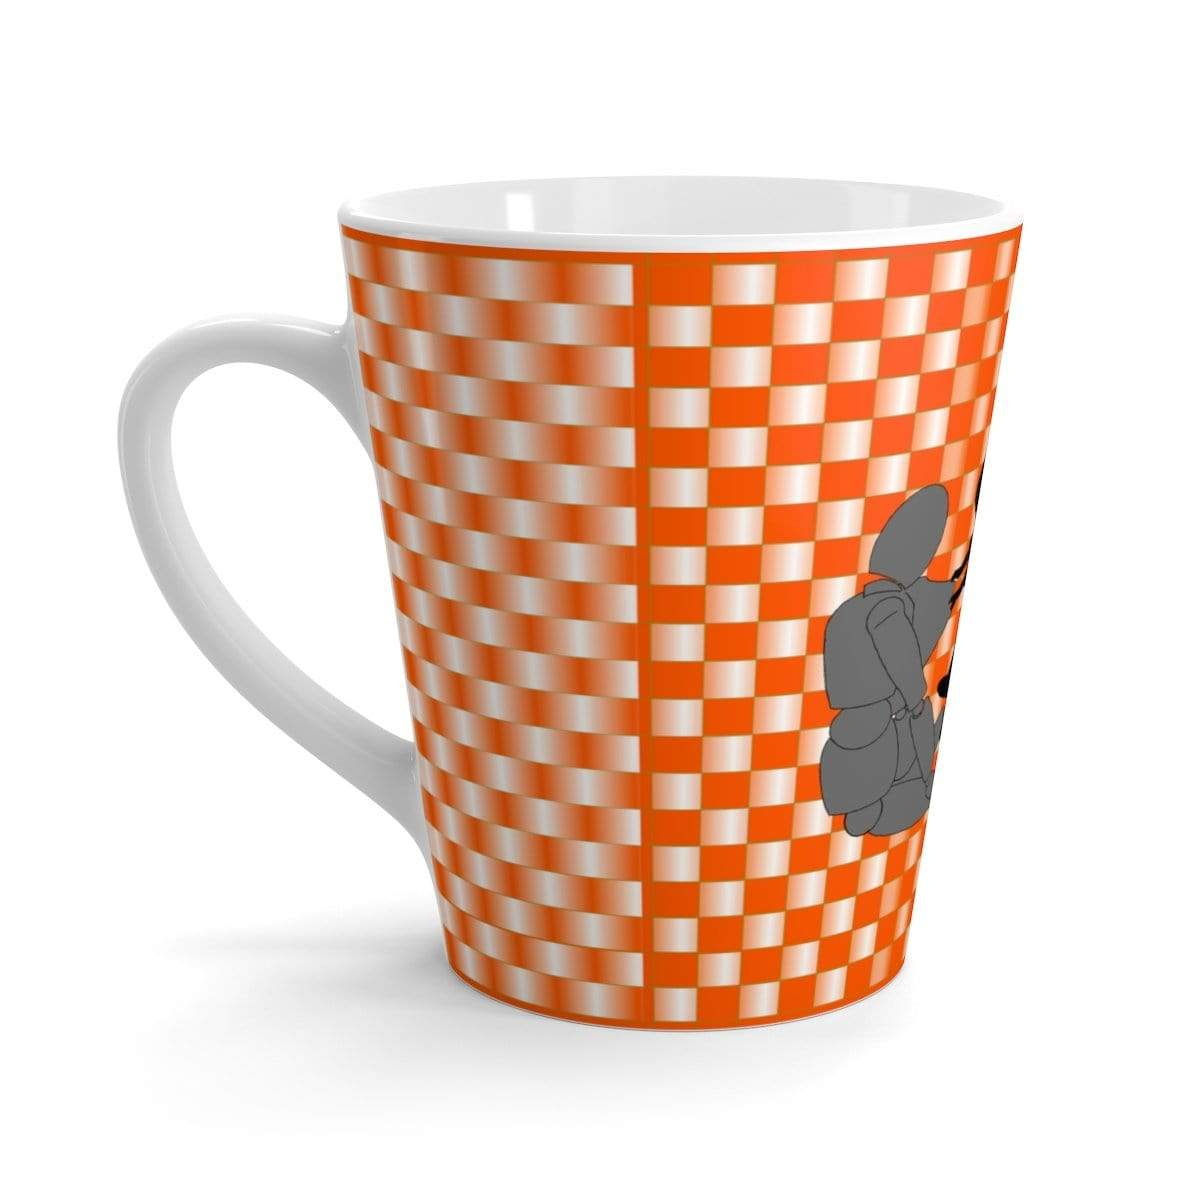 Printify Mug 12oz Coffee-Aesthetic.com - Big Orange/White Grid Latte mug